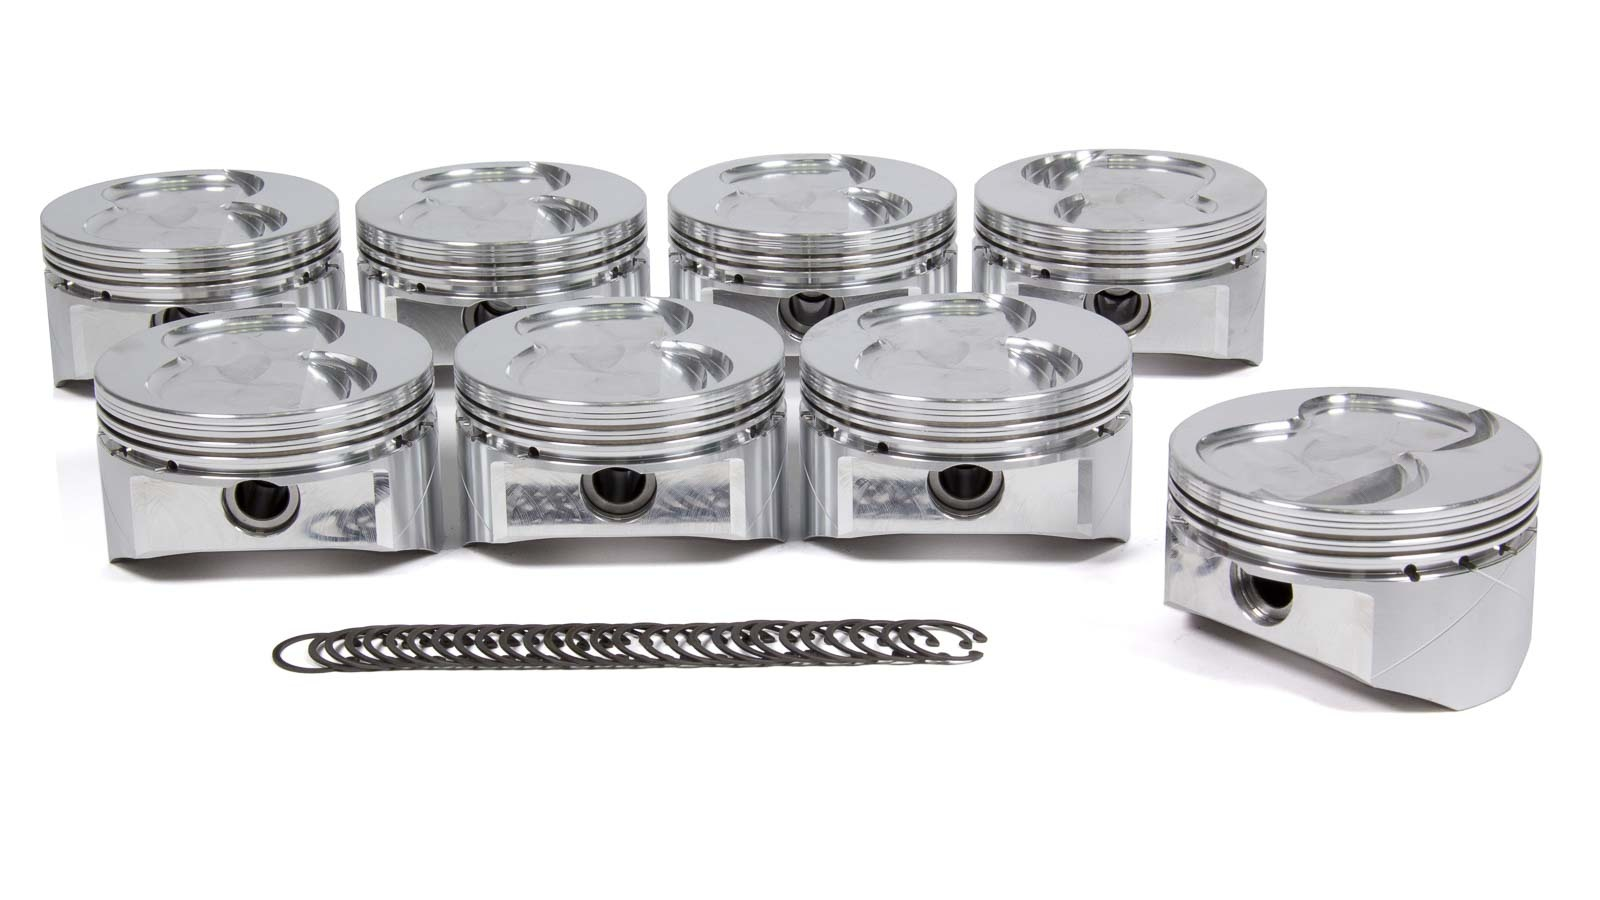 DSS Racing 4111X-4030 Piston, GSX Series, Forged, 4.030 in Bore, 1.5 x 1.5 x 4.0 mm Ring Grooves, Minus 13.0 cc, Small Block Ford, Set of 8